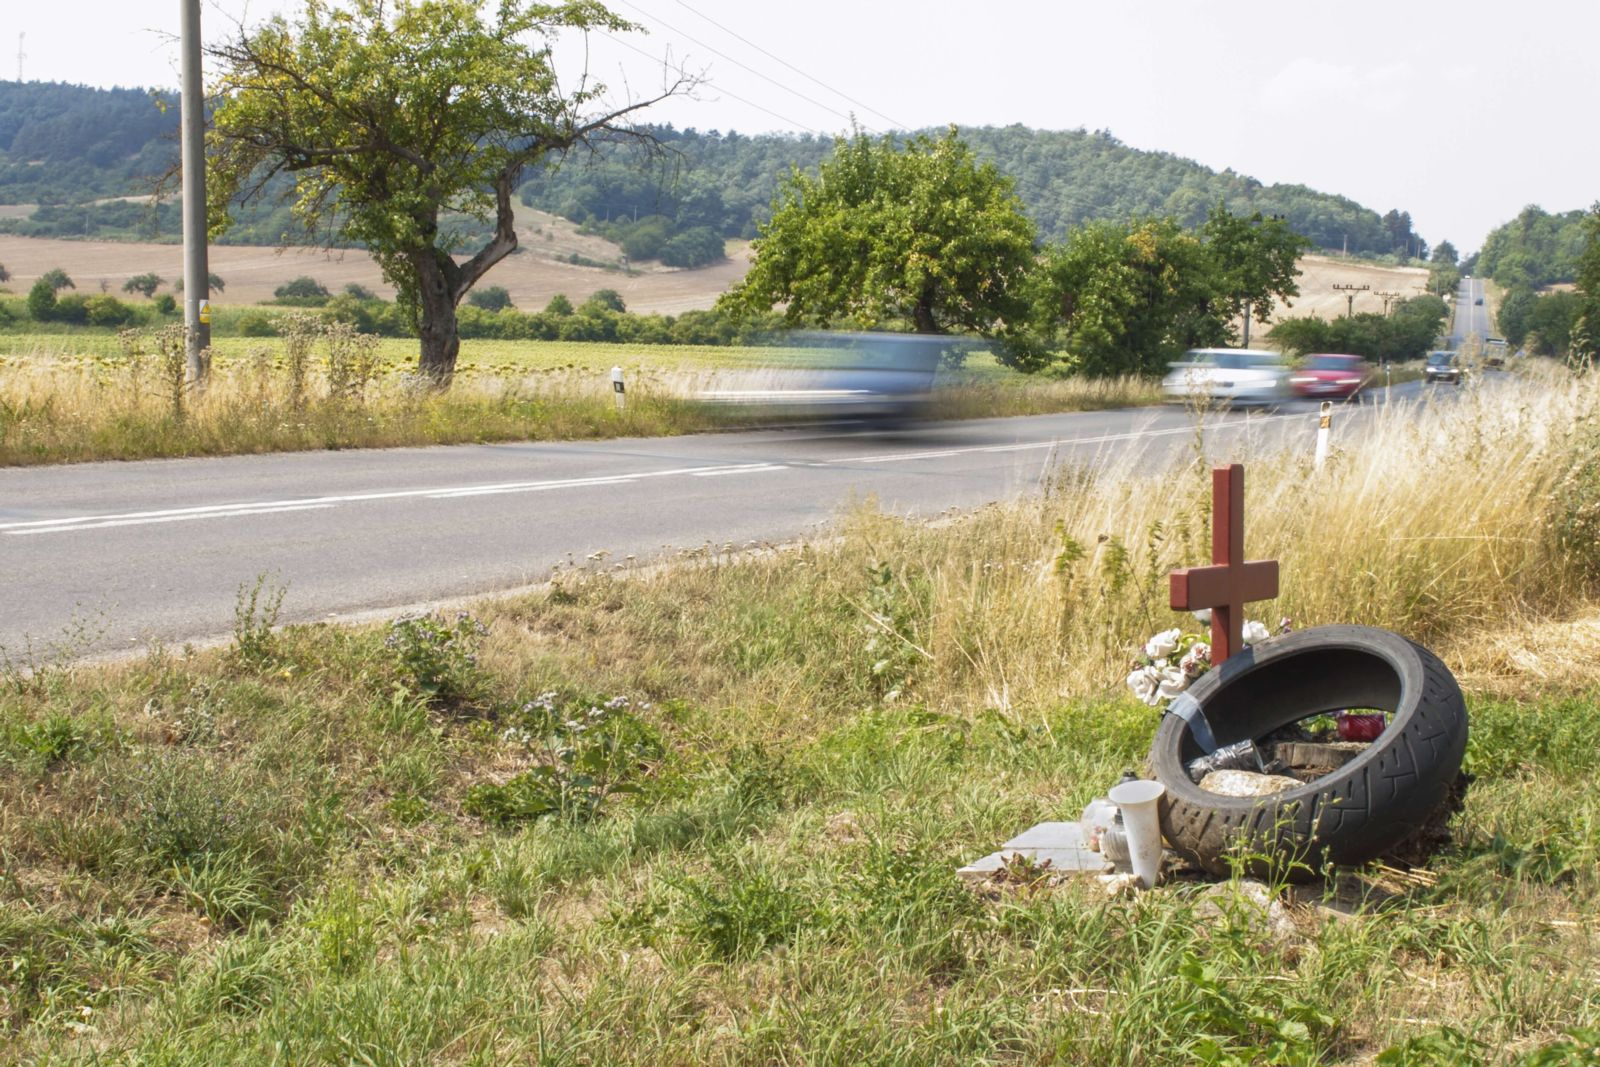 Grave on the side of the road